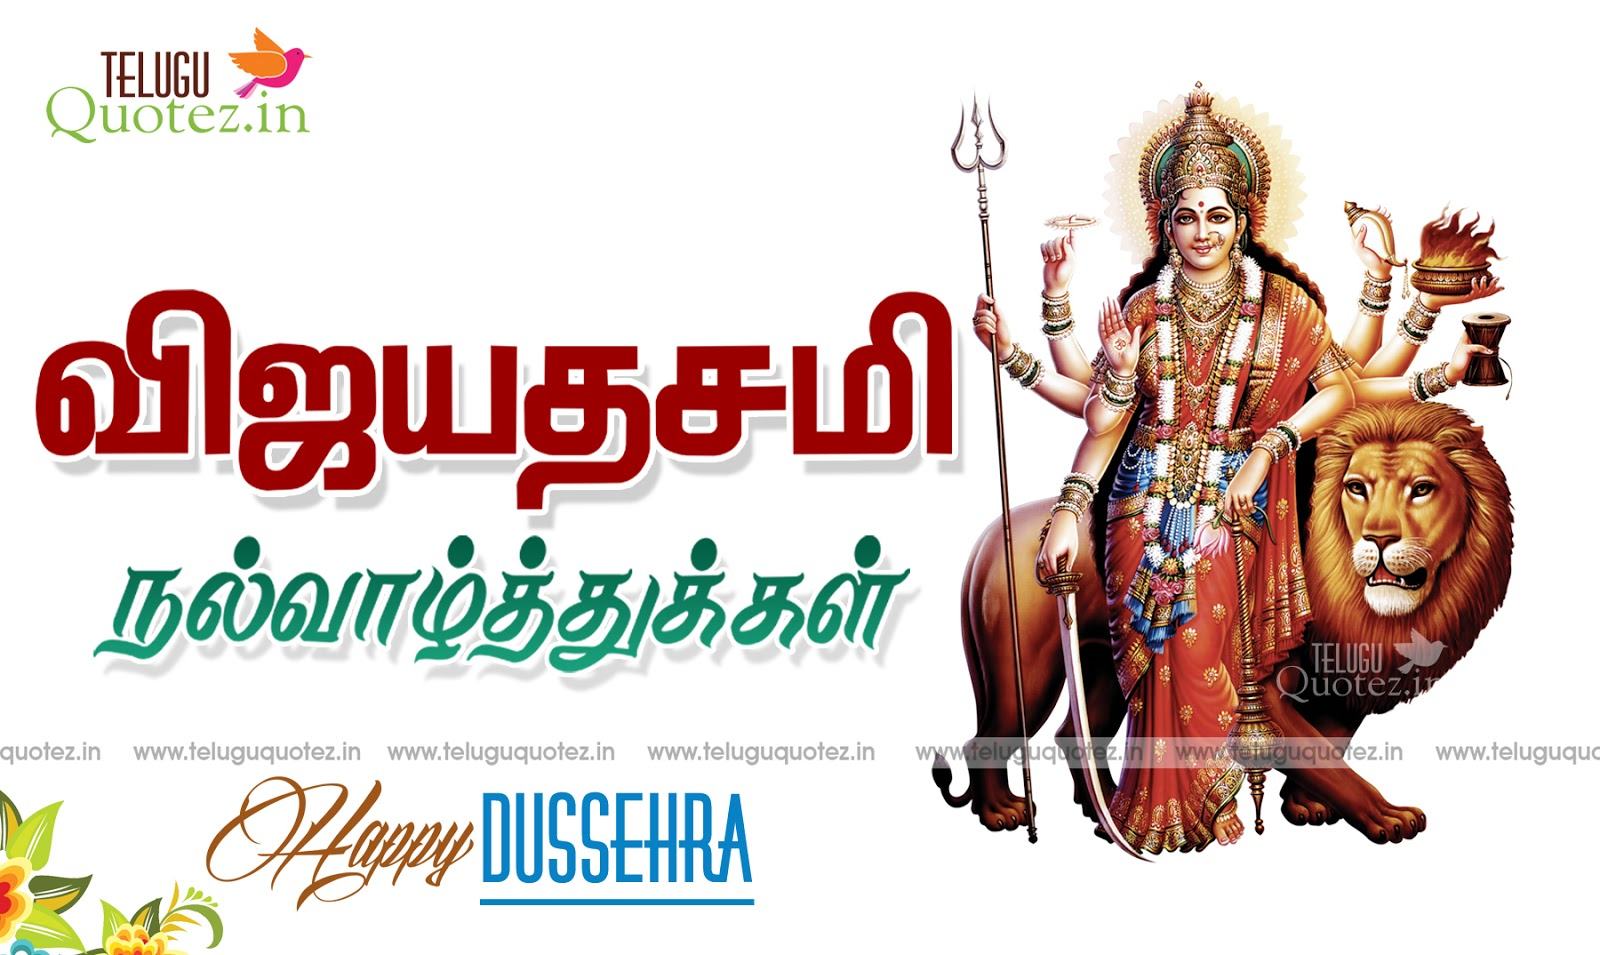 Happu Dussehra Tamil Quotes And Greetings Hd Images Free Downloads